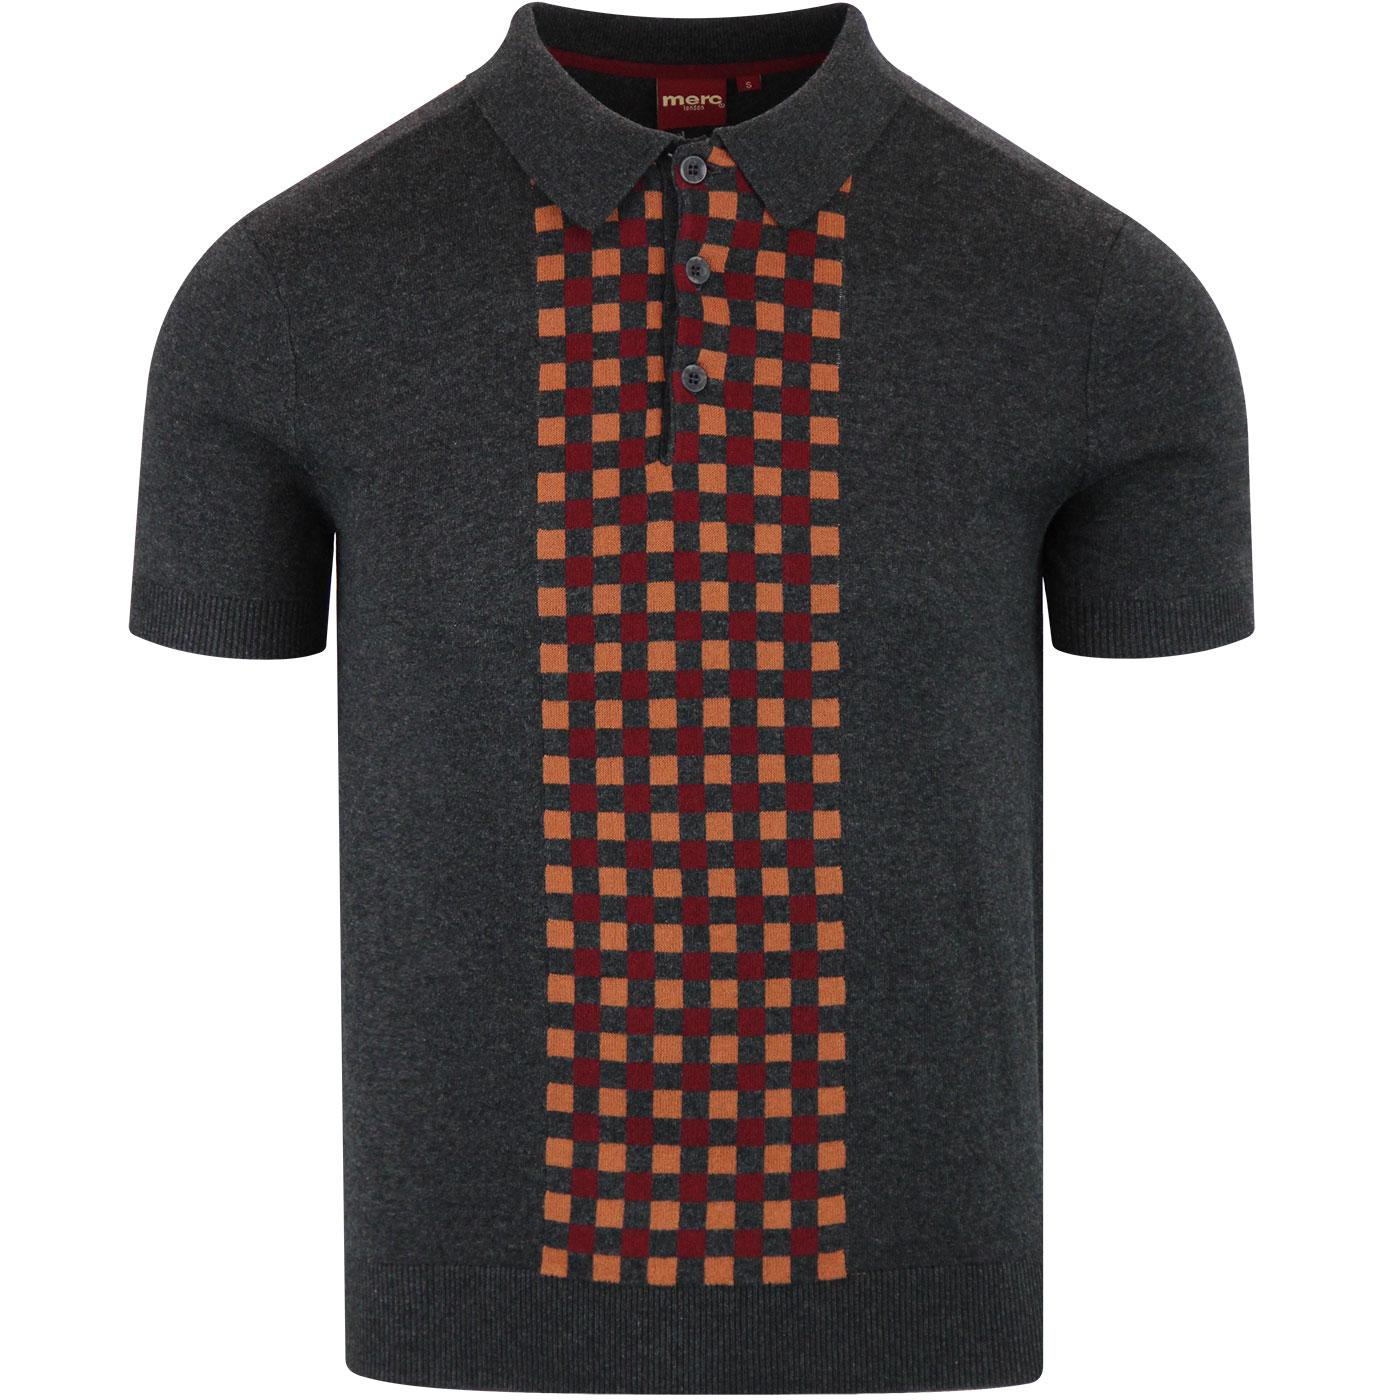 Jarvis MERC Retro Mod Check Knit Polo Top CHARCOAL